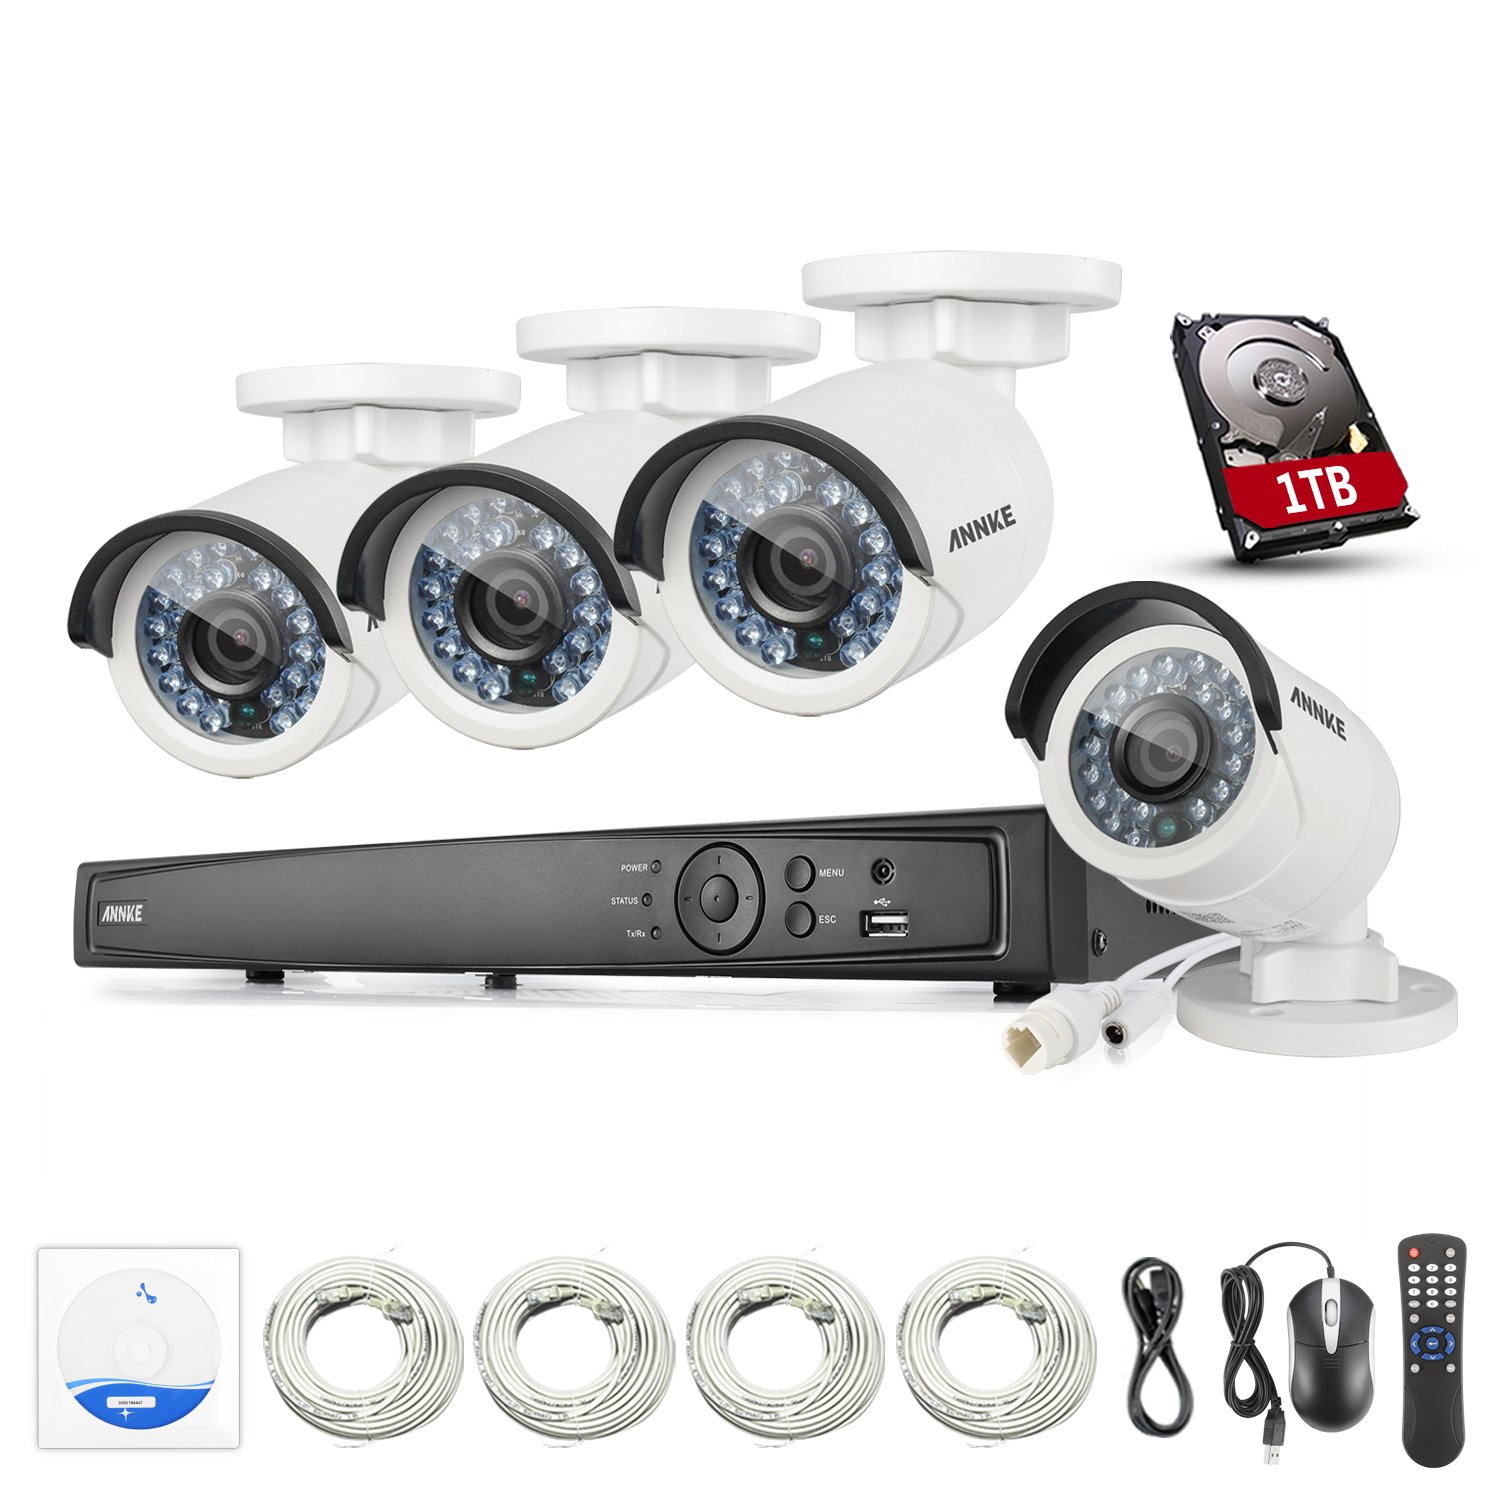 ANNKE 8CH 6.0MP NVR Surveillance Video Security Camera System with 4.0MP IP Bullet Cameras, 100ft Super Night Vision, Compatible with Hikvison & Dahua ONVIF Network Camera, One 1TB HDD Included